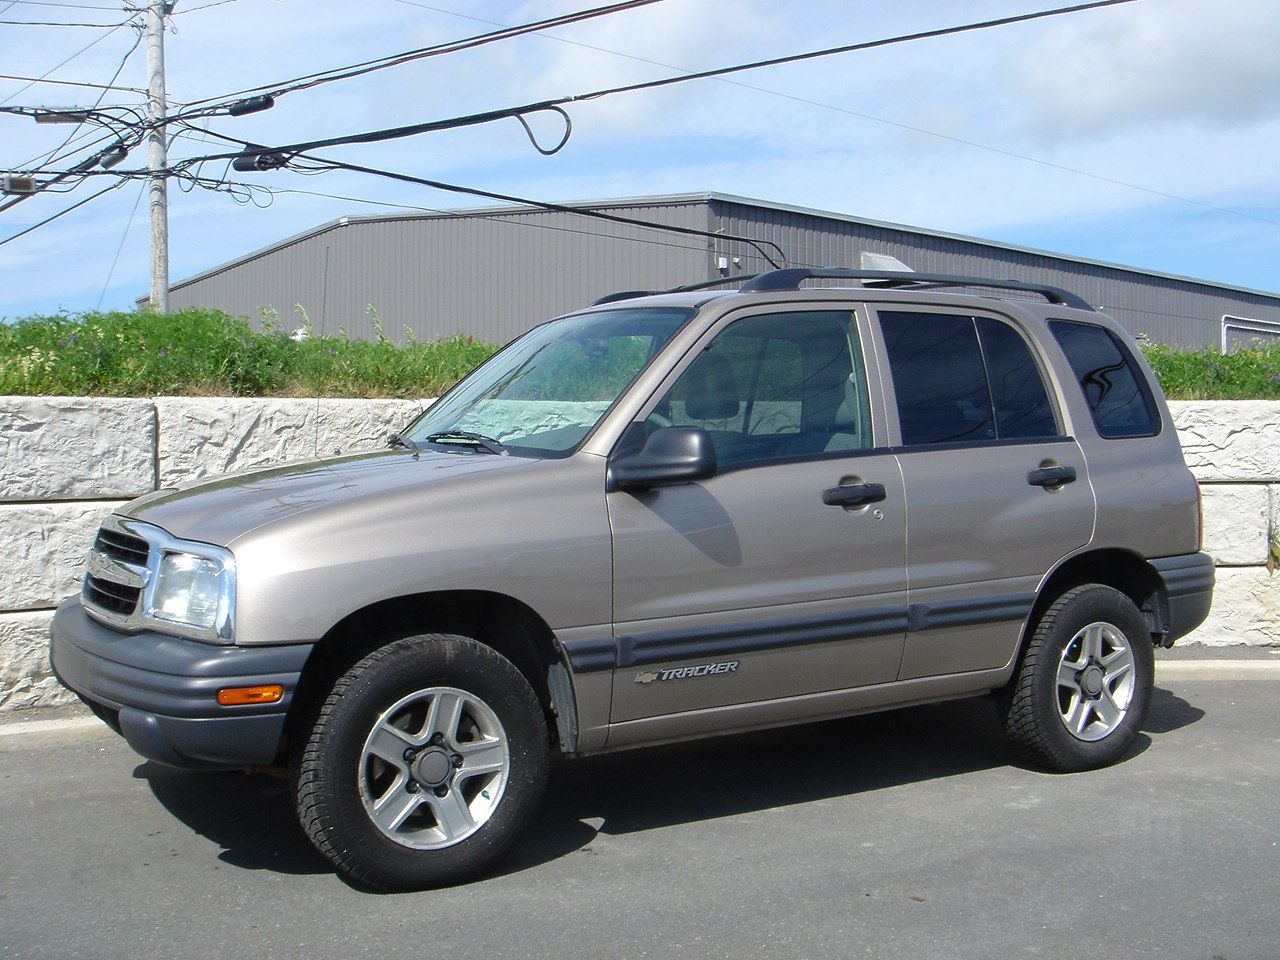 The 19th Vehicle I Ve Owned A 2004 Chevrolet Tracker It Had A 4 Cylinder Engine And Was Way Under Powered It Was A 4x4 But It Rea Chevrolet Tracker Vehicles